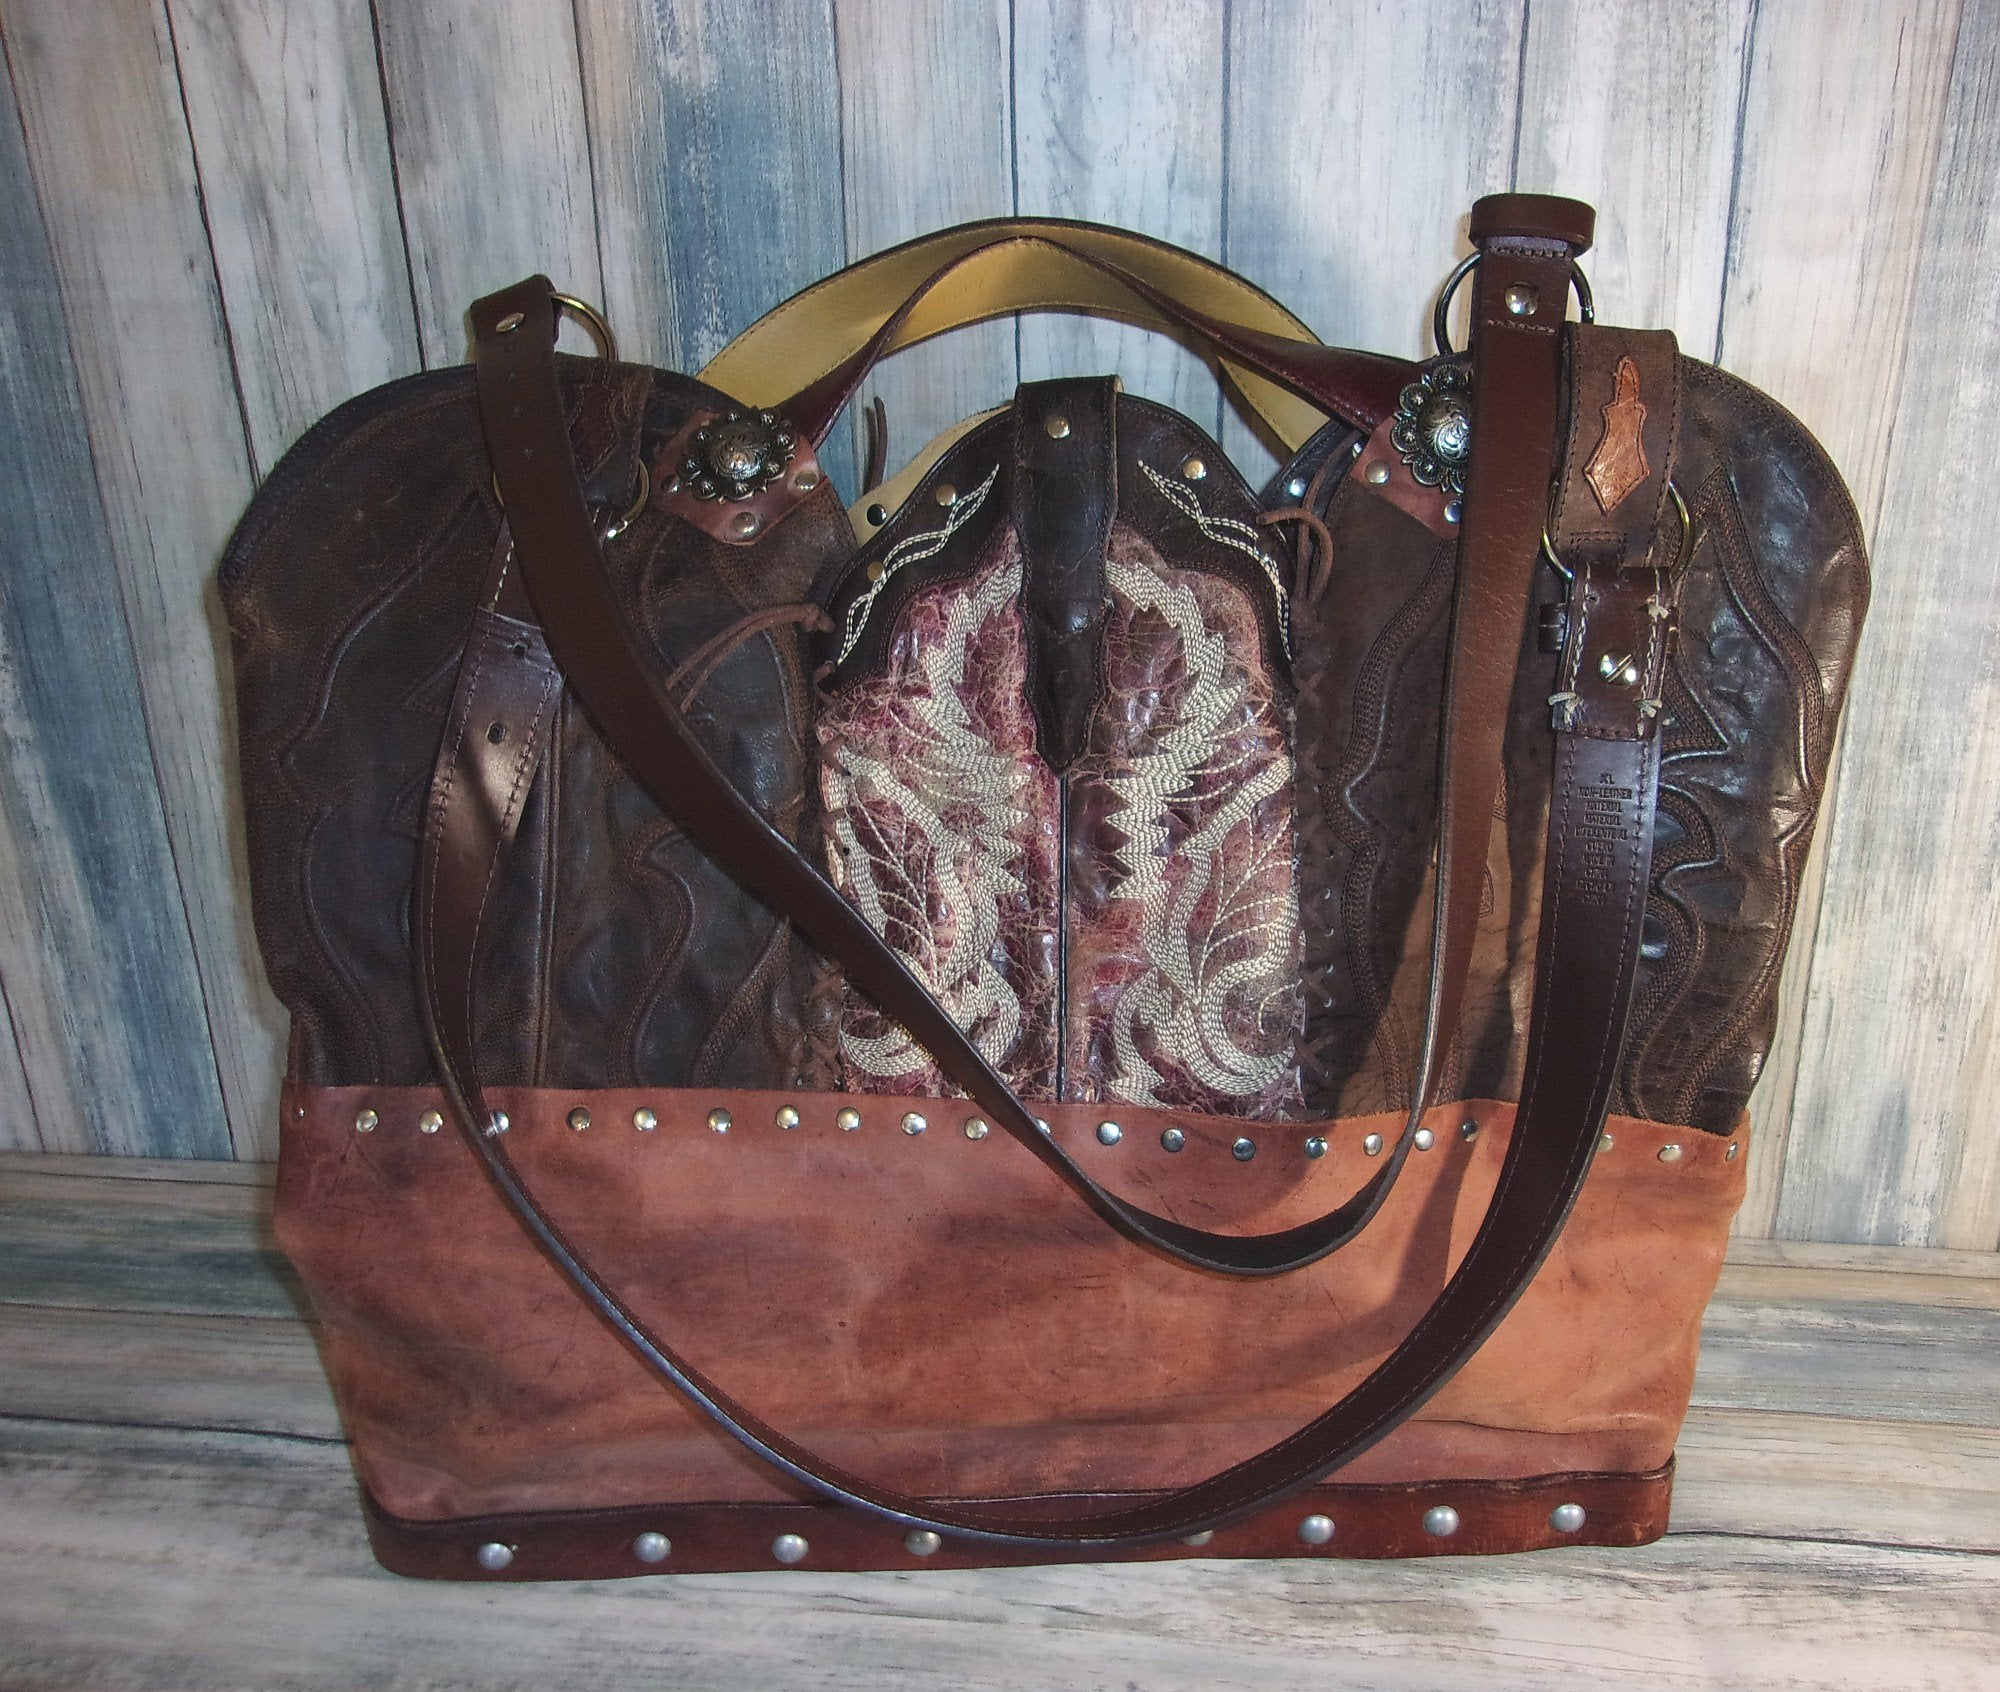 Texas Longhorn Leather Tote LT16 - Distinctive Western Handbags, Purses and Totes